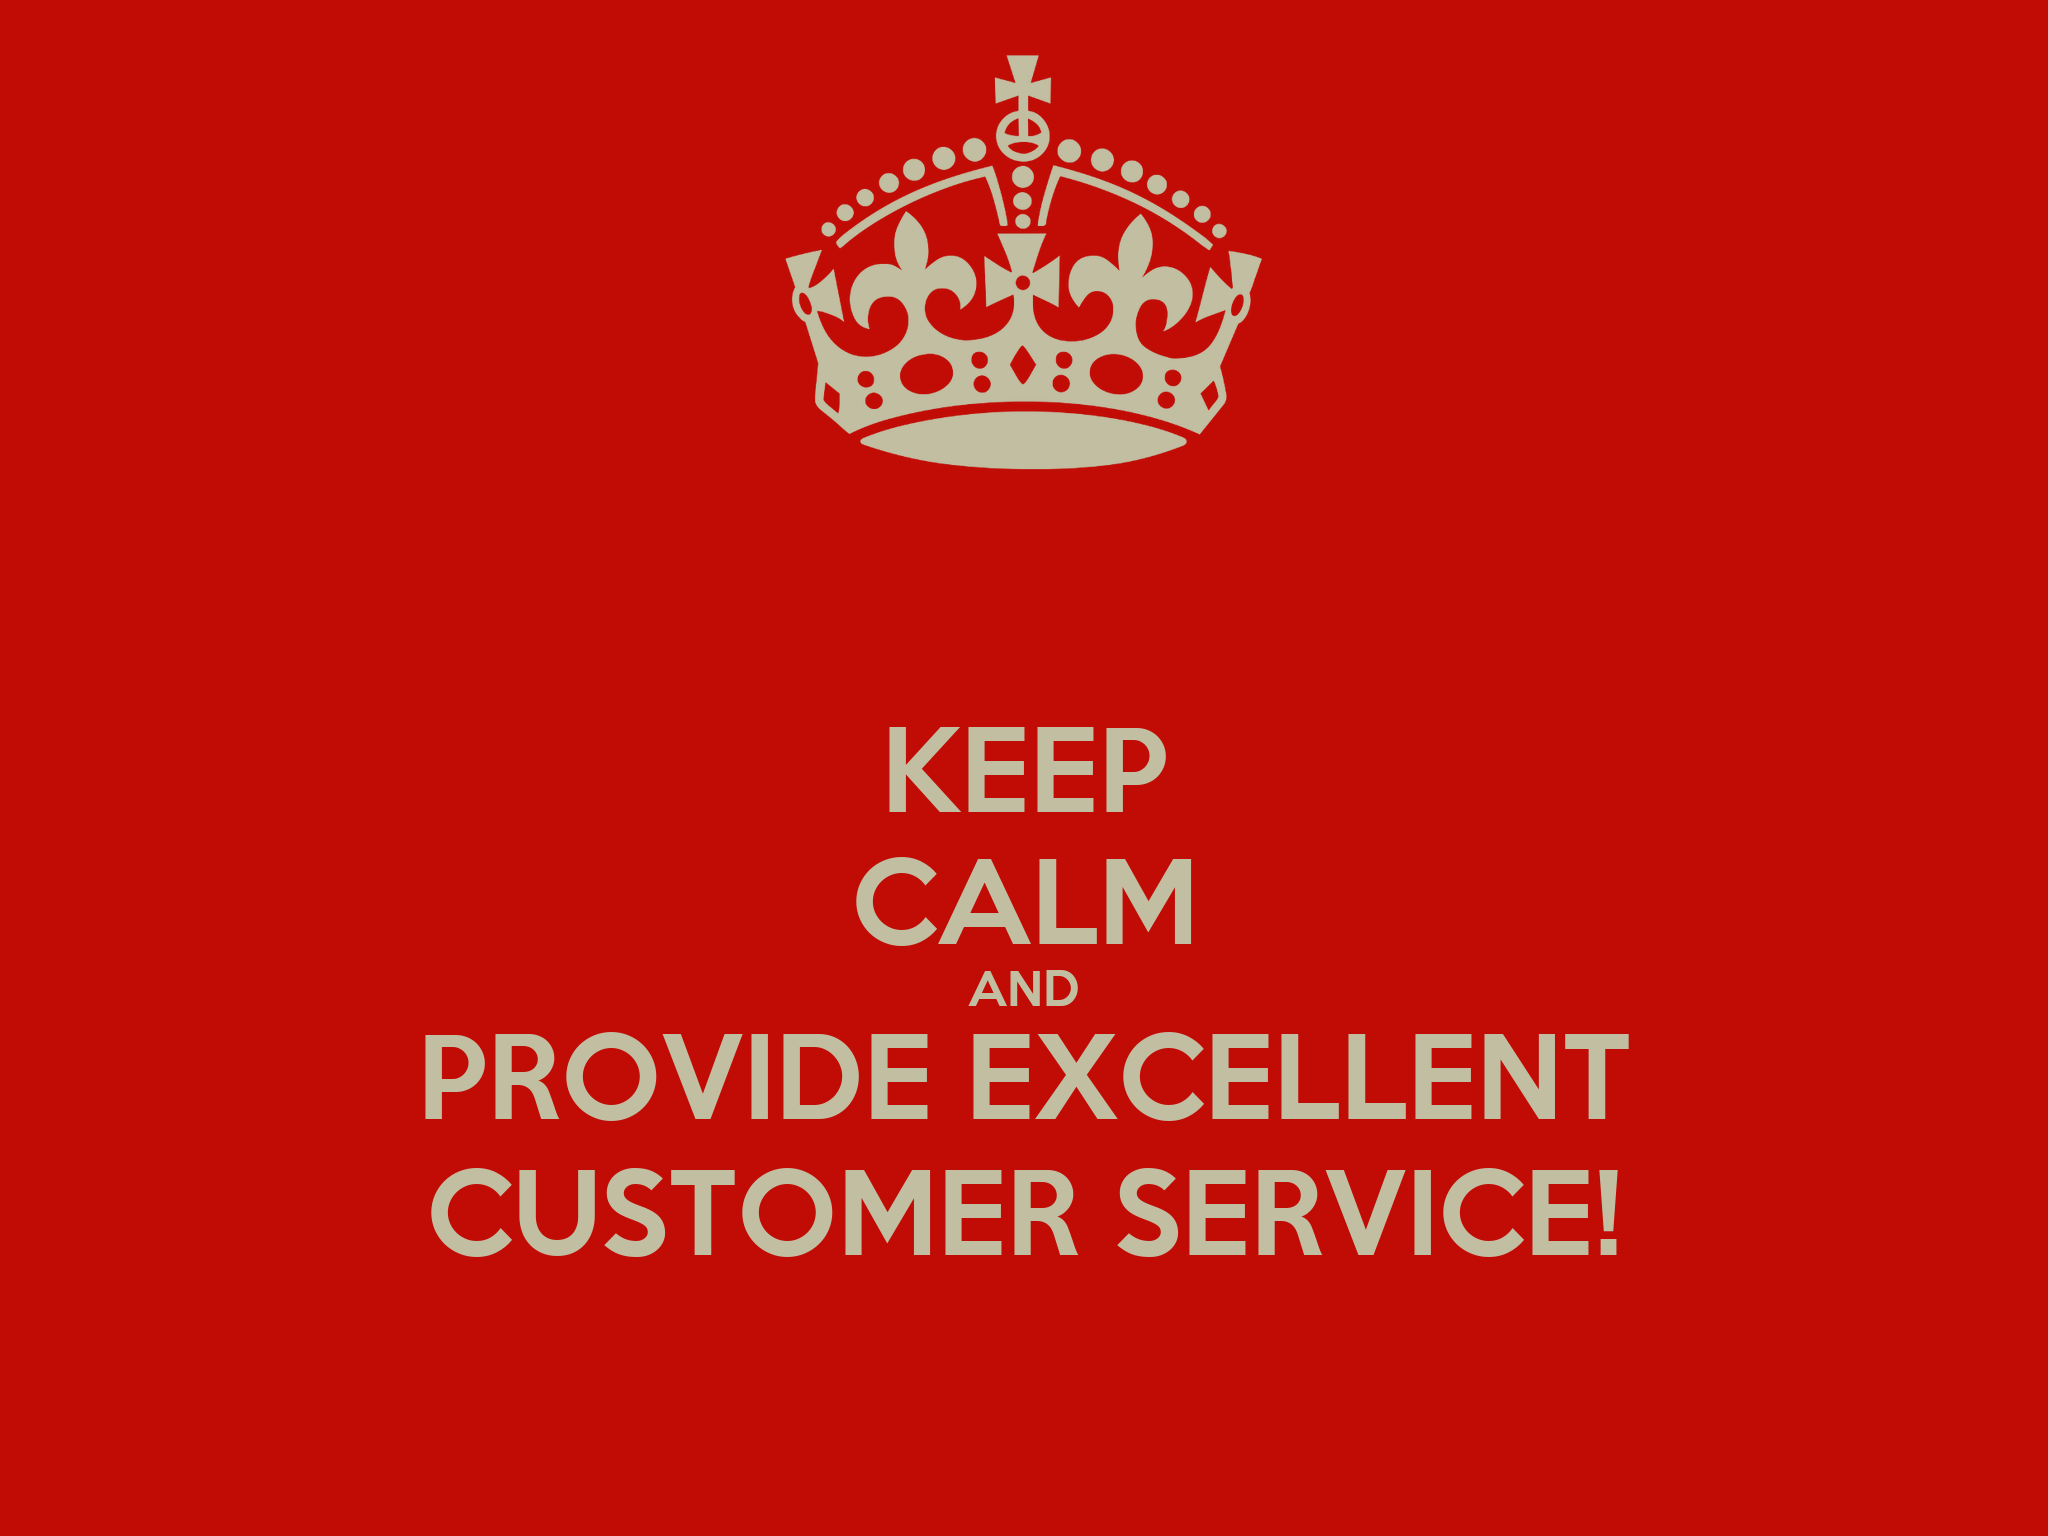 examples of excellent customer service skills provide excellent